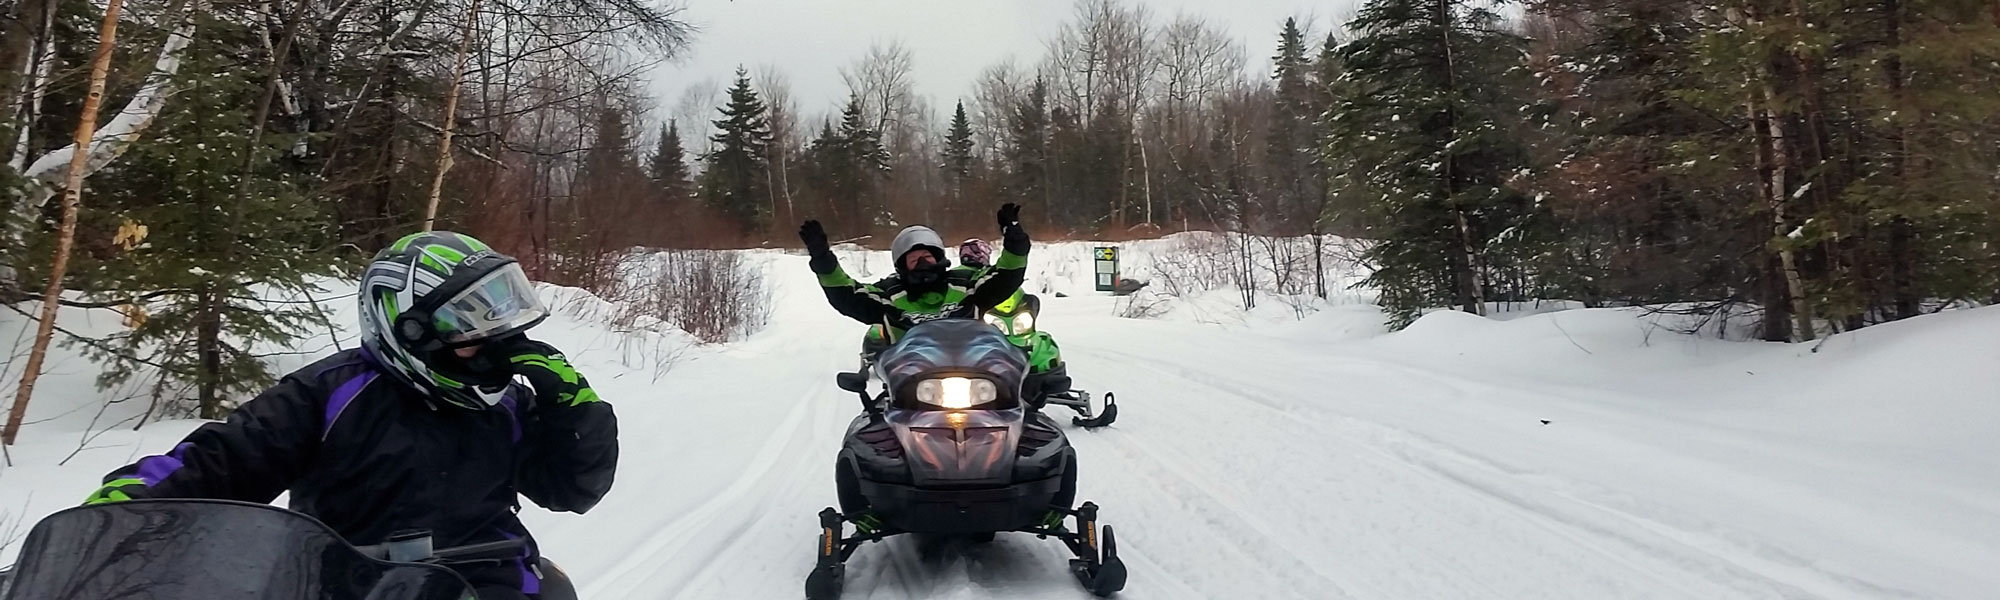 Snowmobiling in the Moosehead Lakes Area